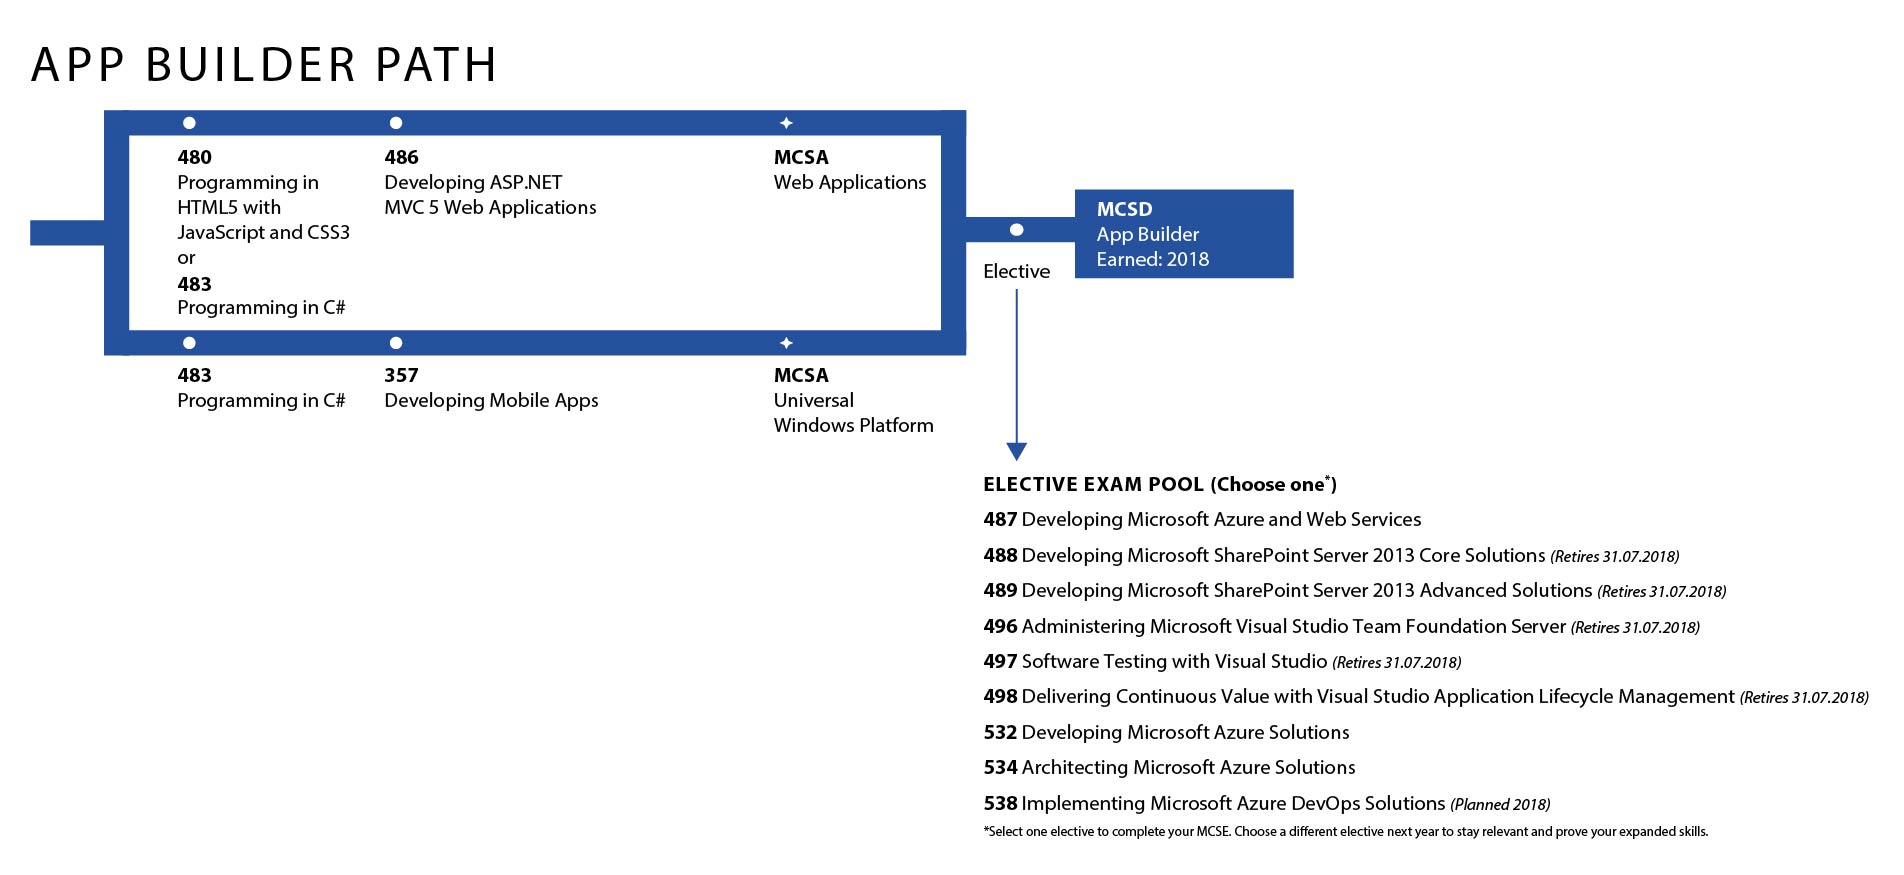 Microsoft App Builder Path